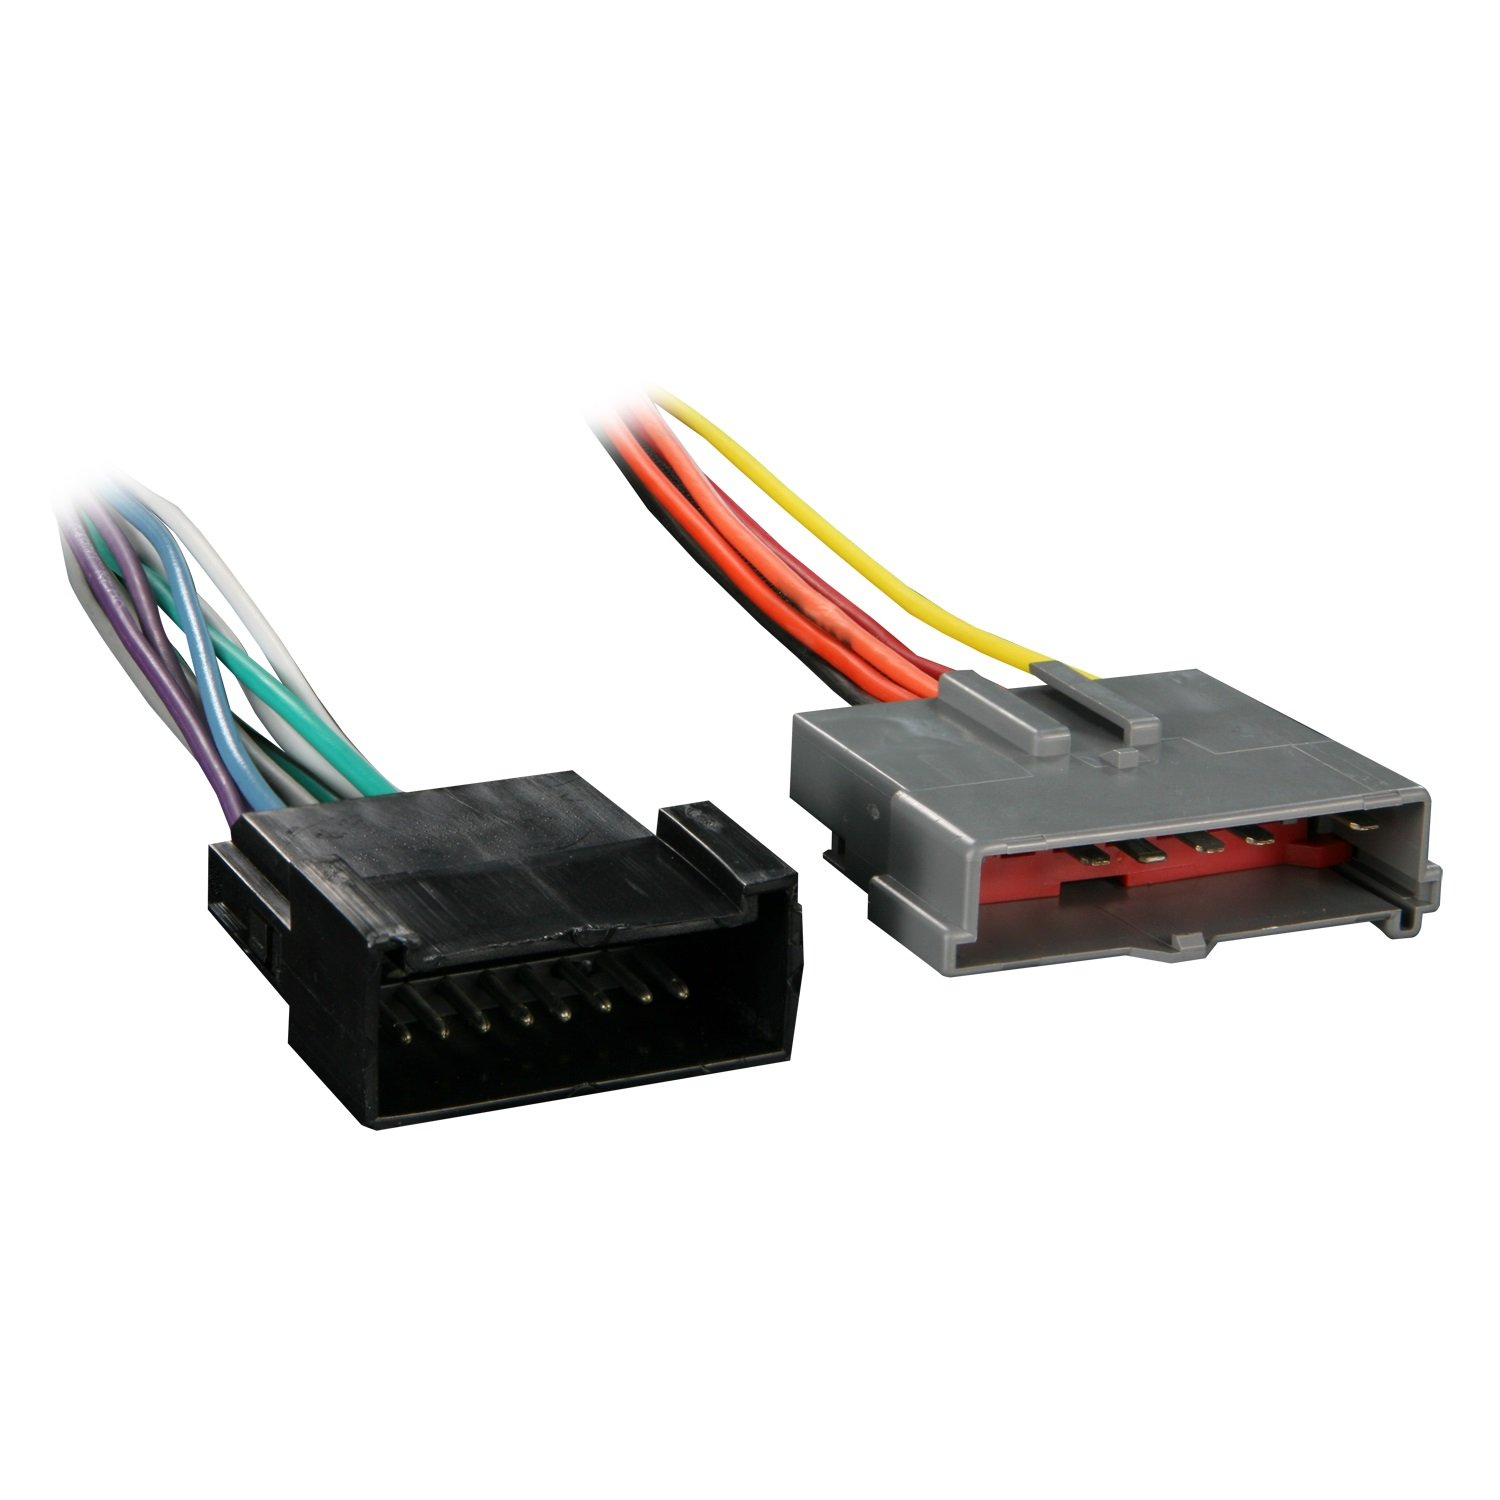 61ze7L0%2Bv8L._SL1500_ amazon com metra 70 5605 amplifier bypass harness for ford metra 70-5511 radio wiring harness fd amp integration system at alyssarenee.co